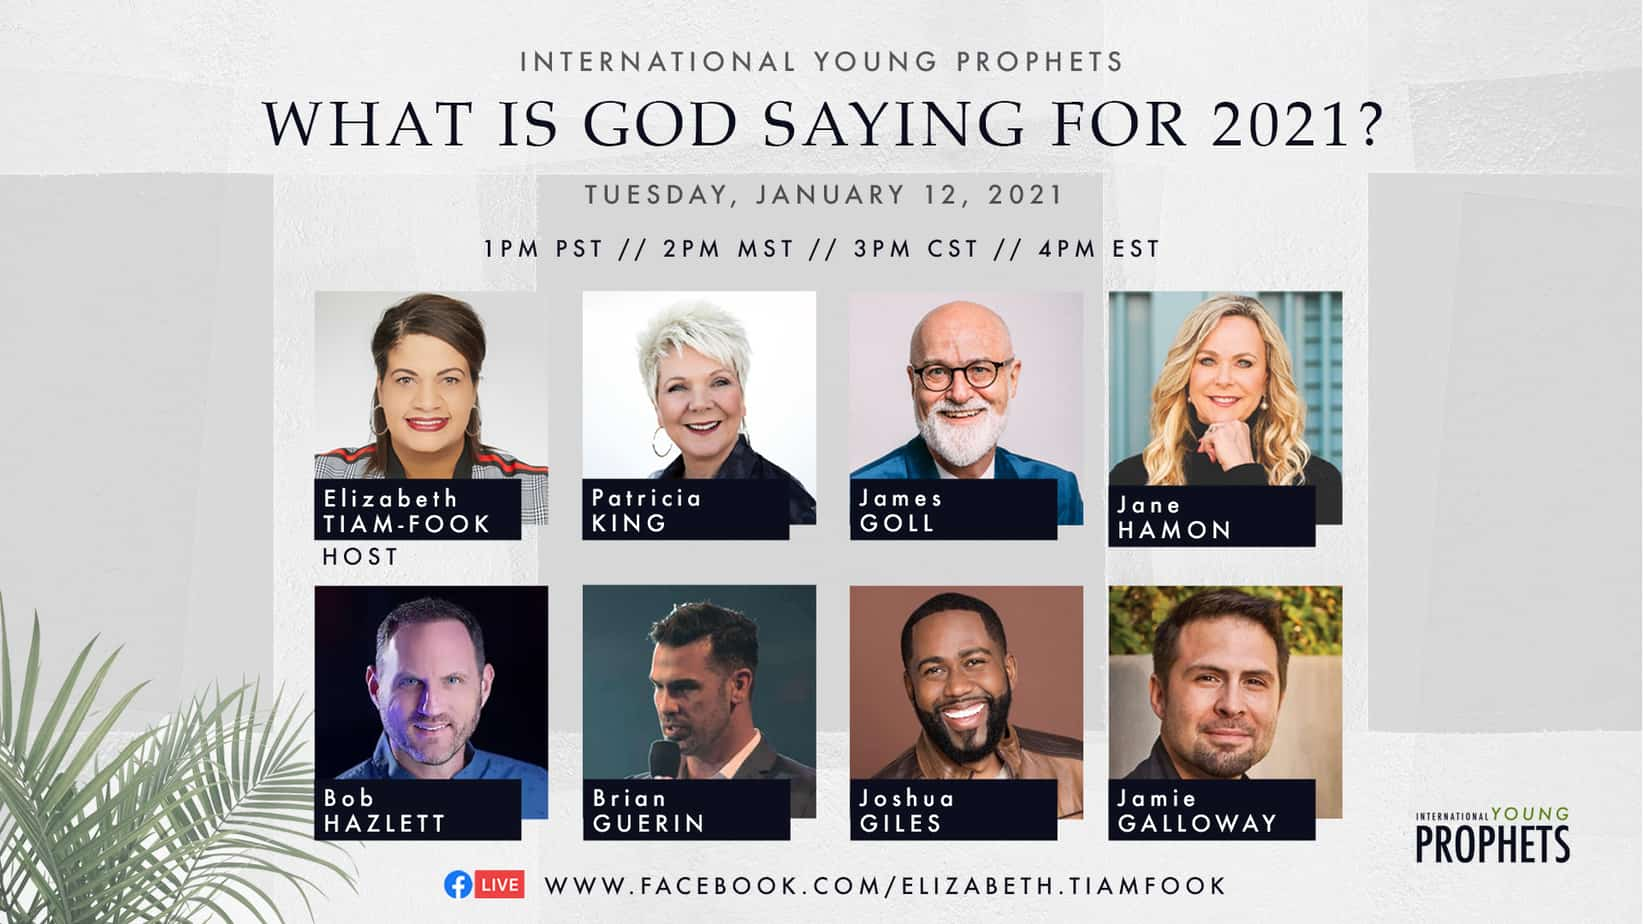 What the Prophets Are Saying About 2021